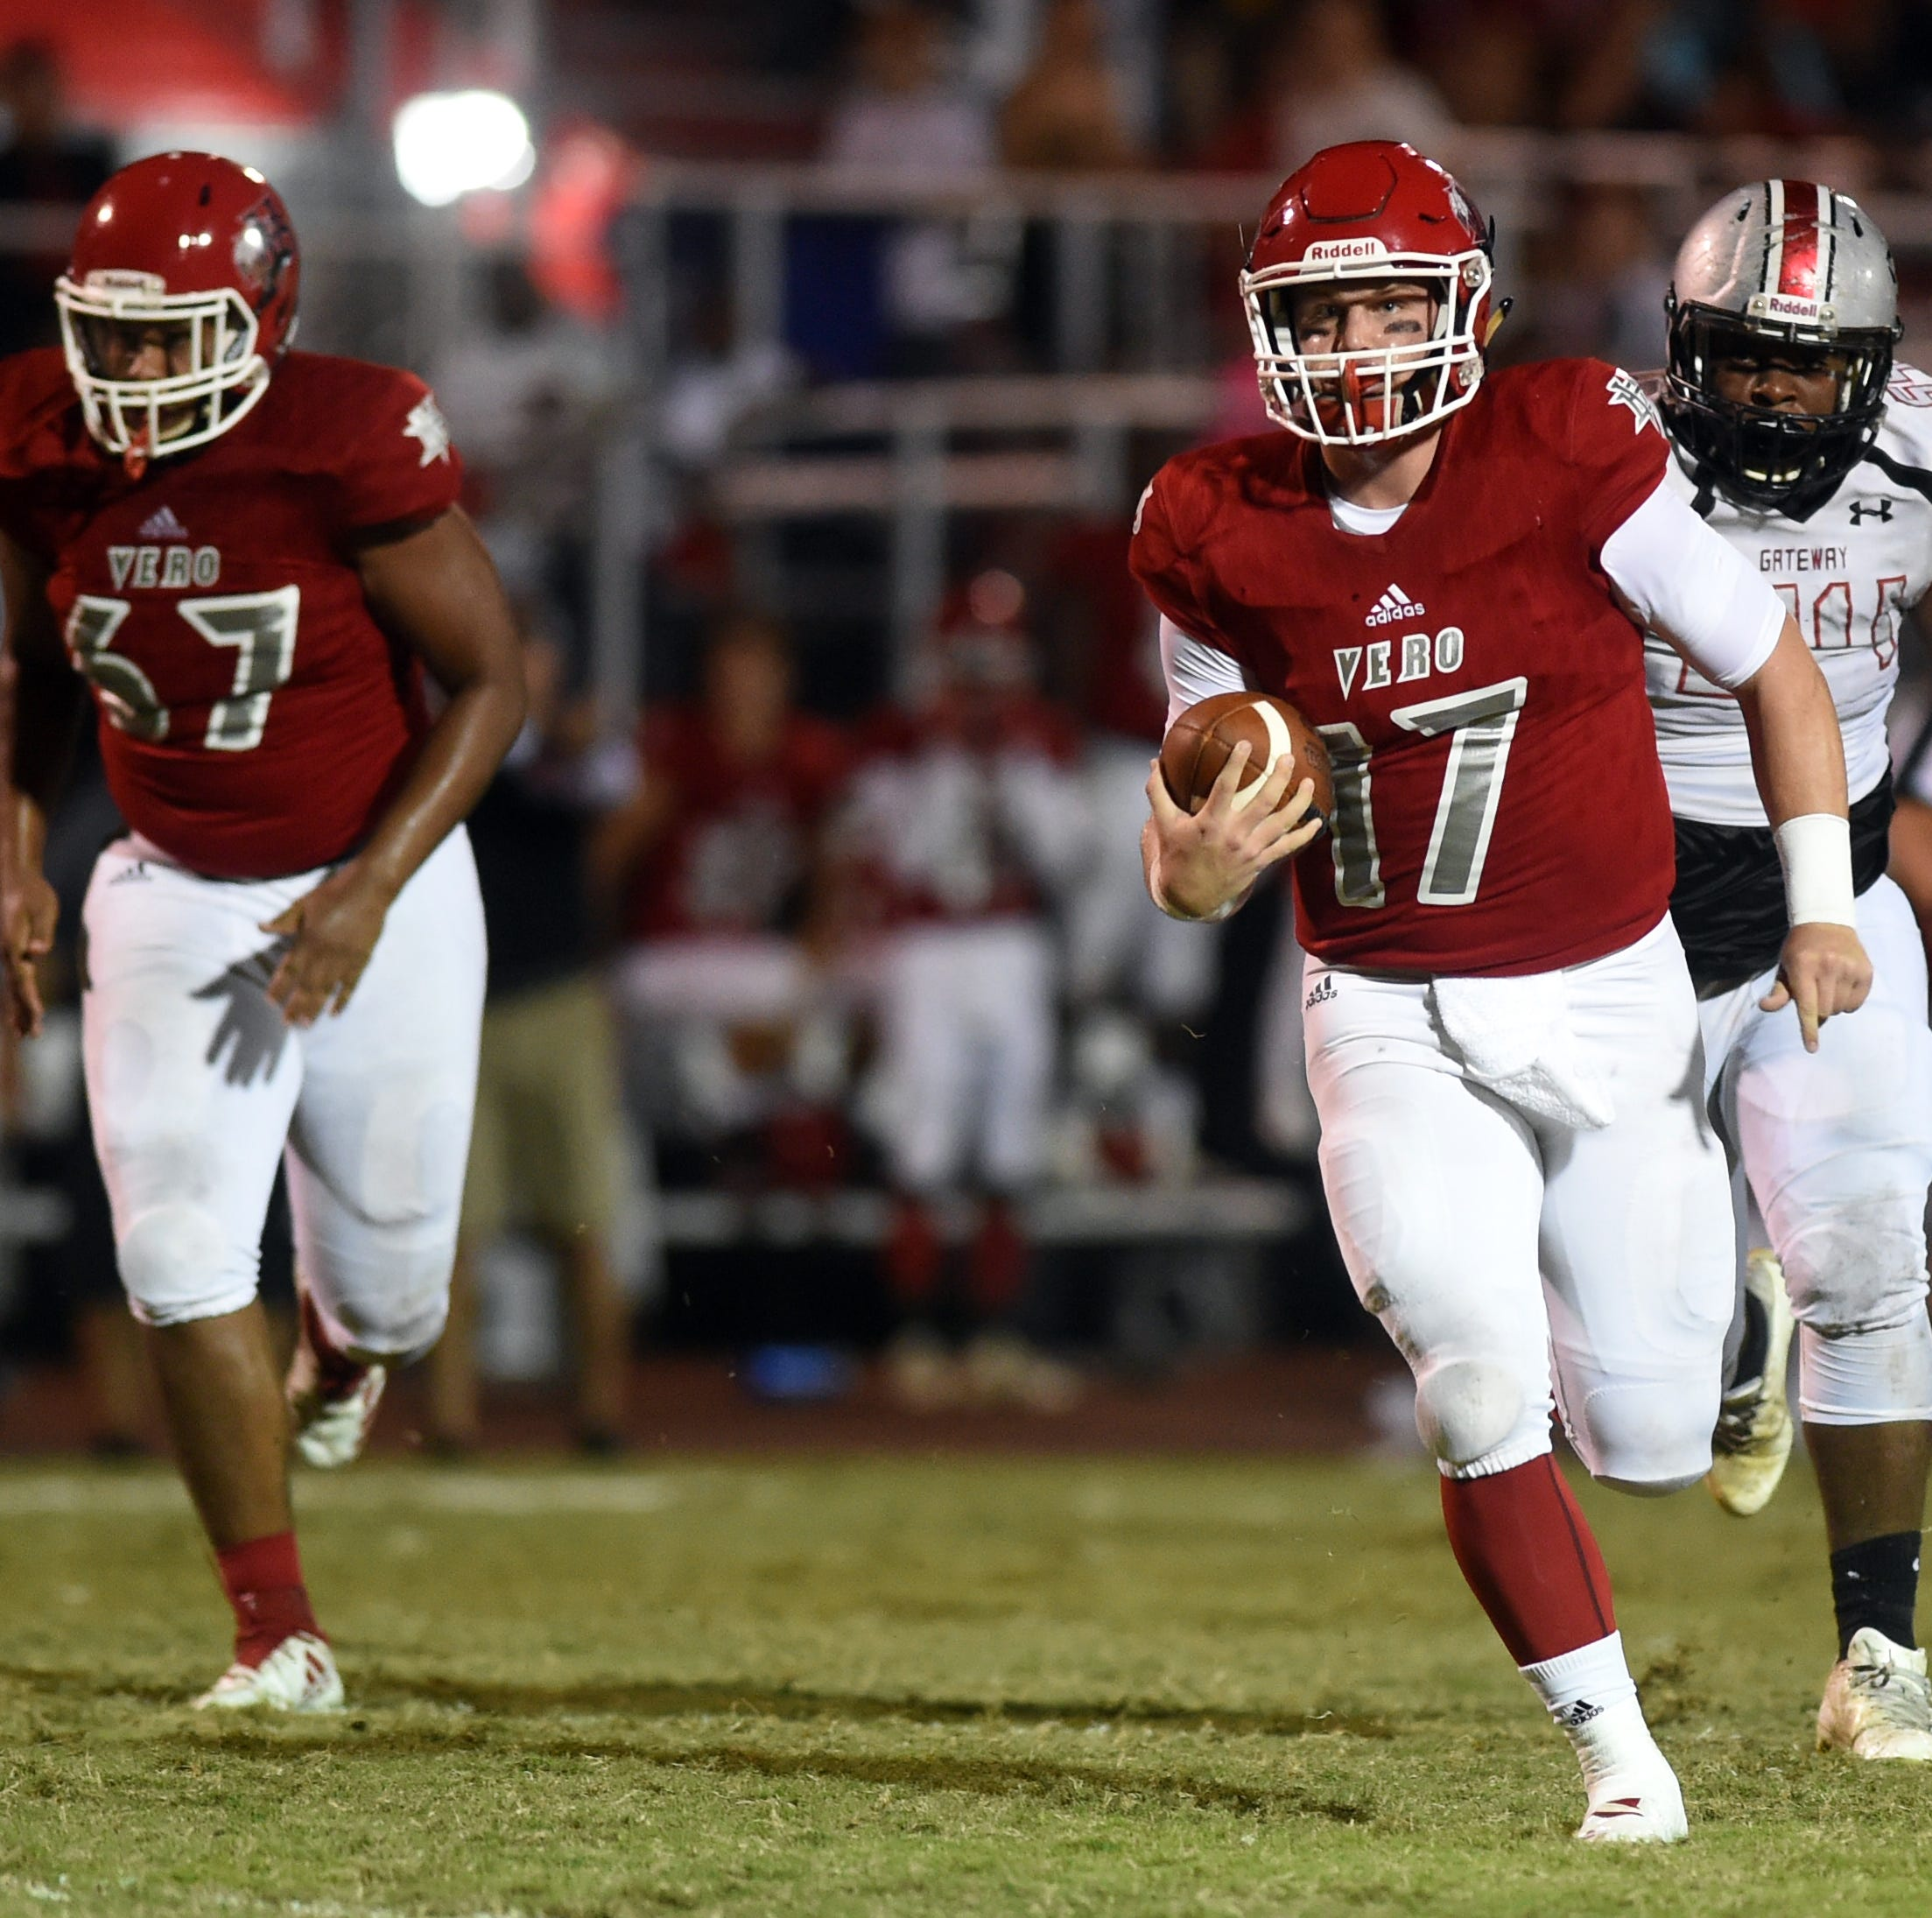 Live scoreboard: Vero Beach vs. Dr. Philips